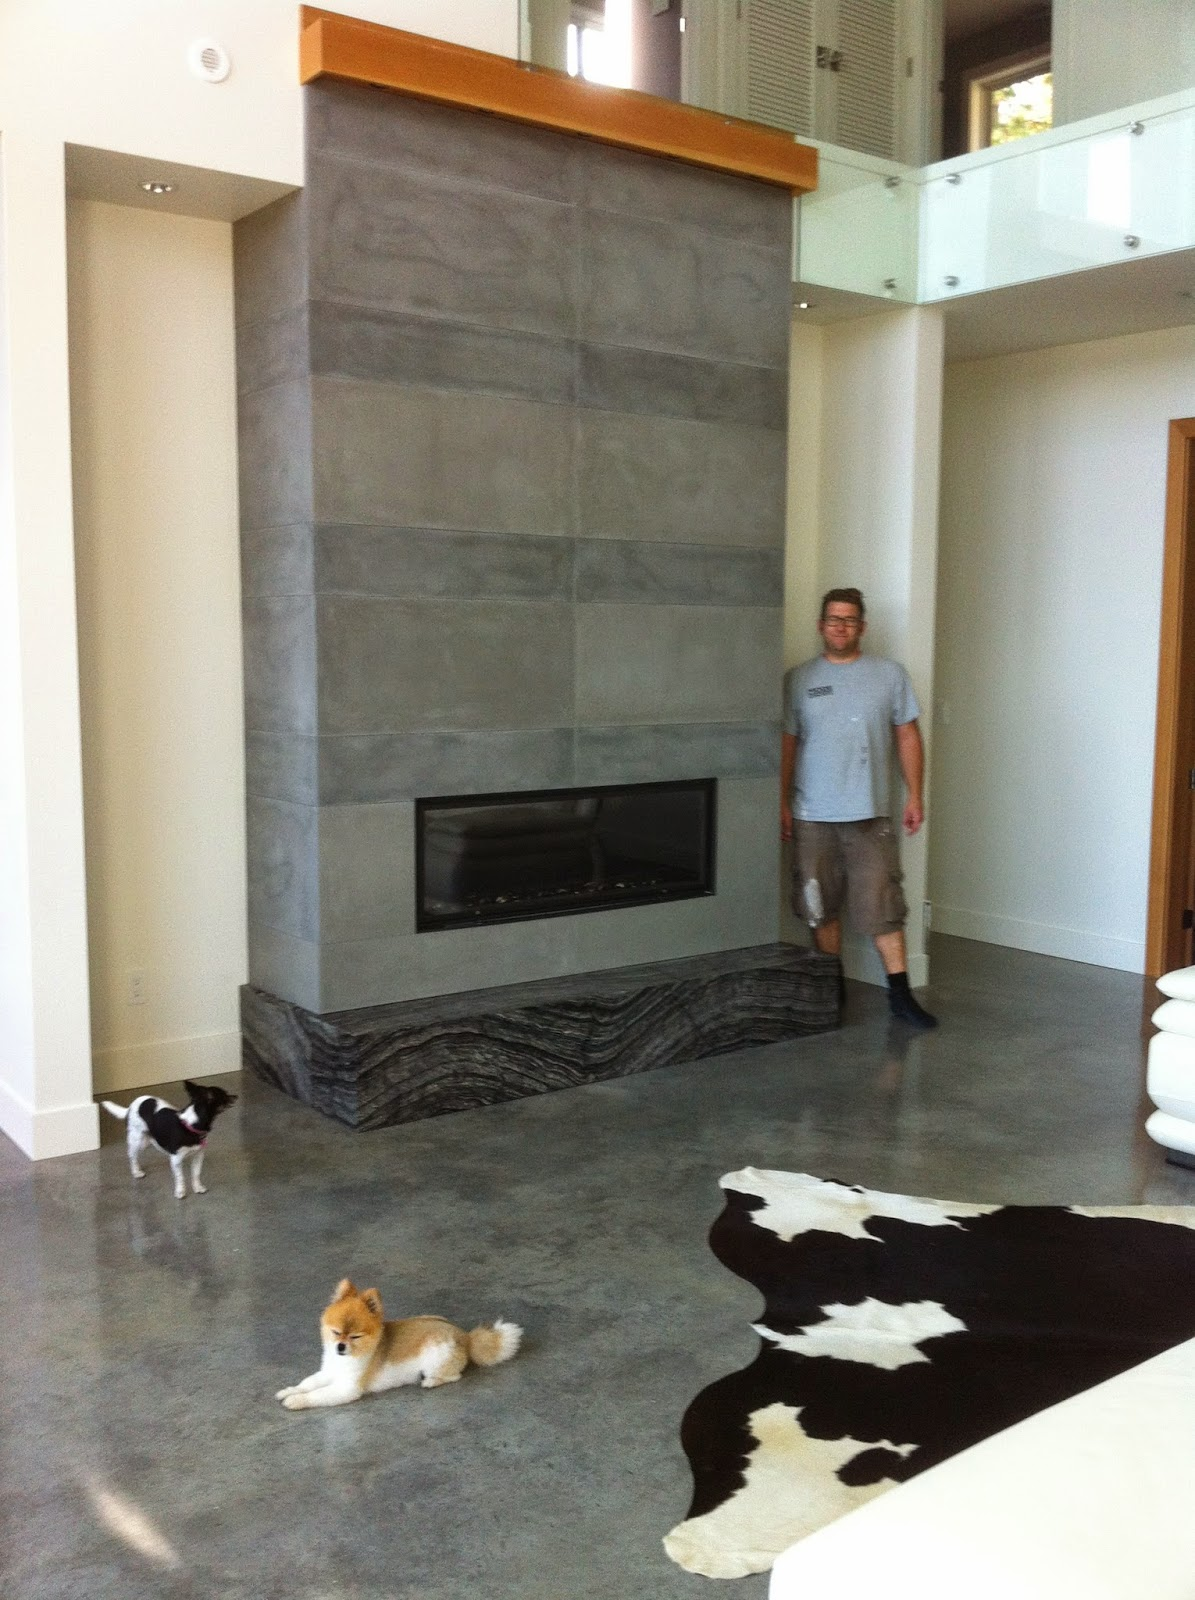 Contemporary Concrete Fireplace Tiles Are All The Rage Article By Mode In Kelowna Bc